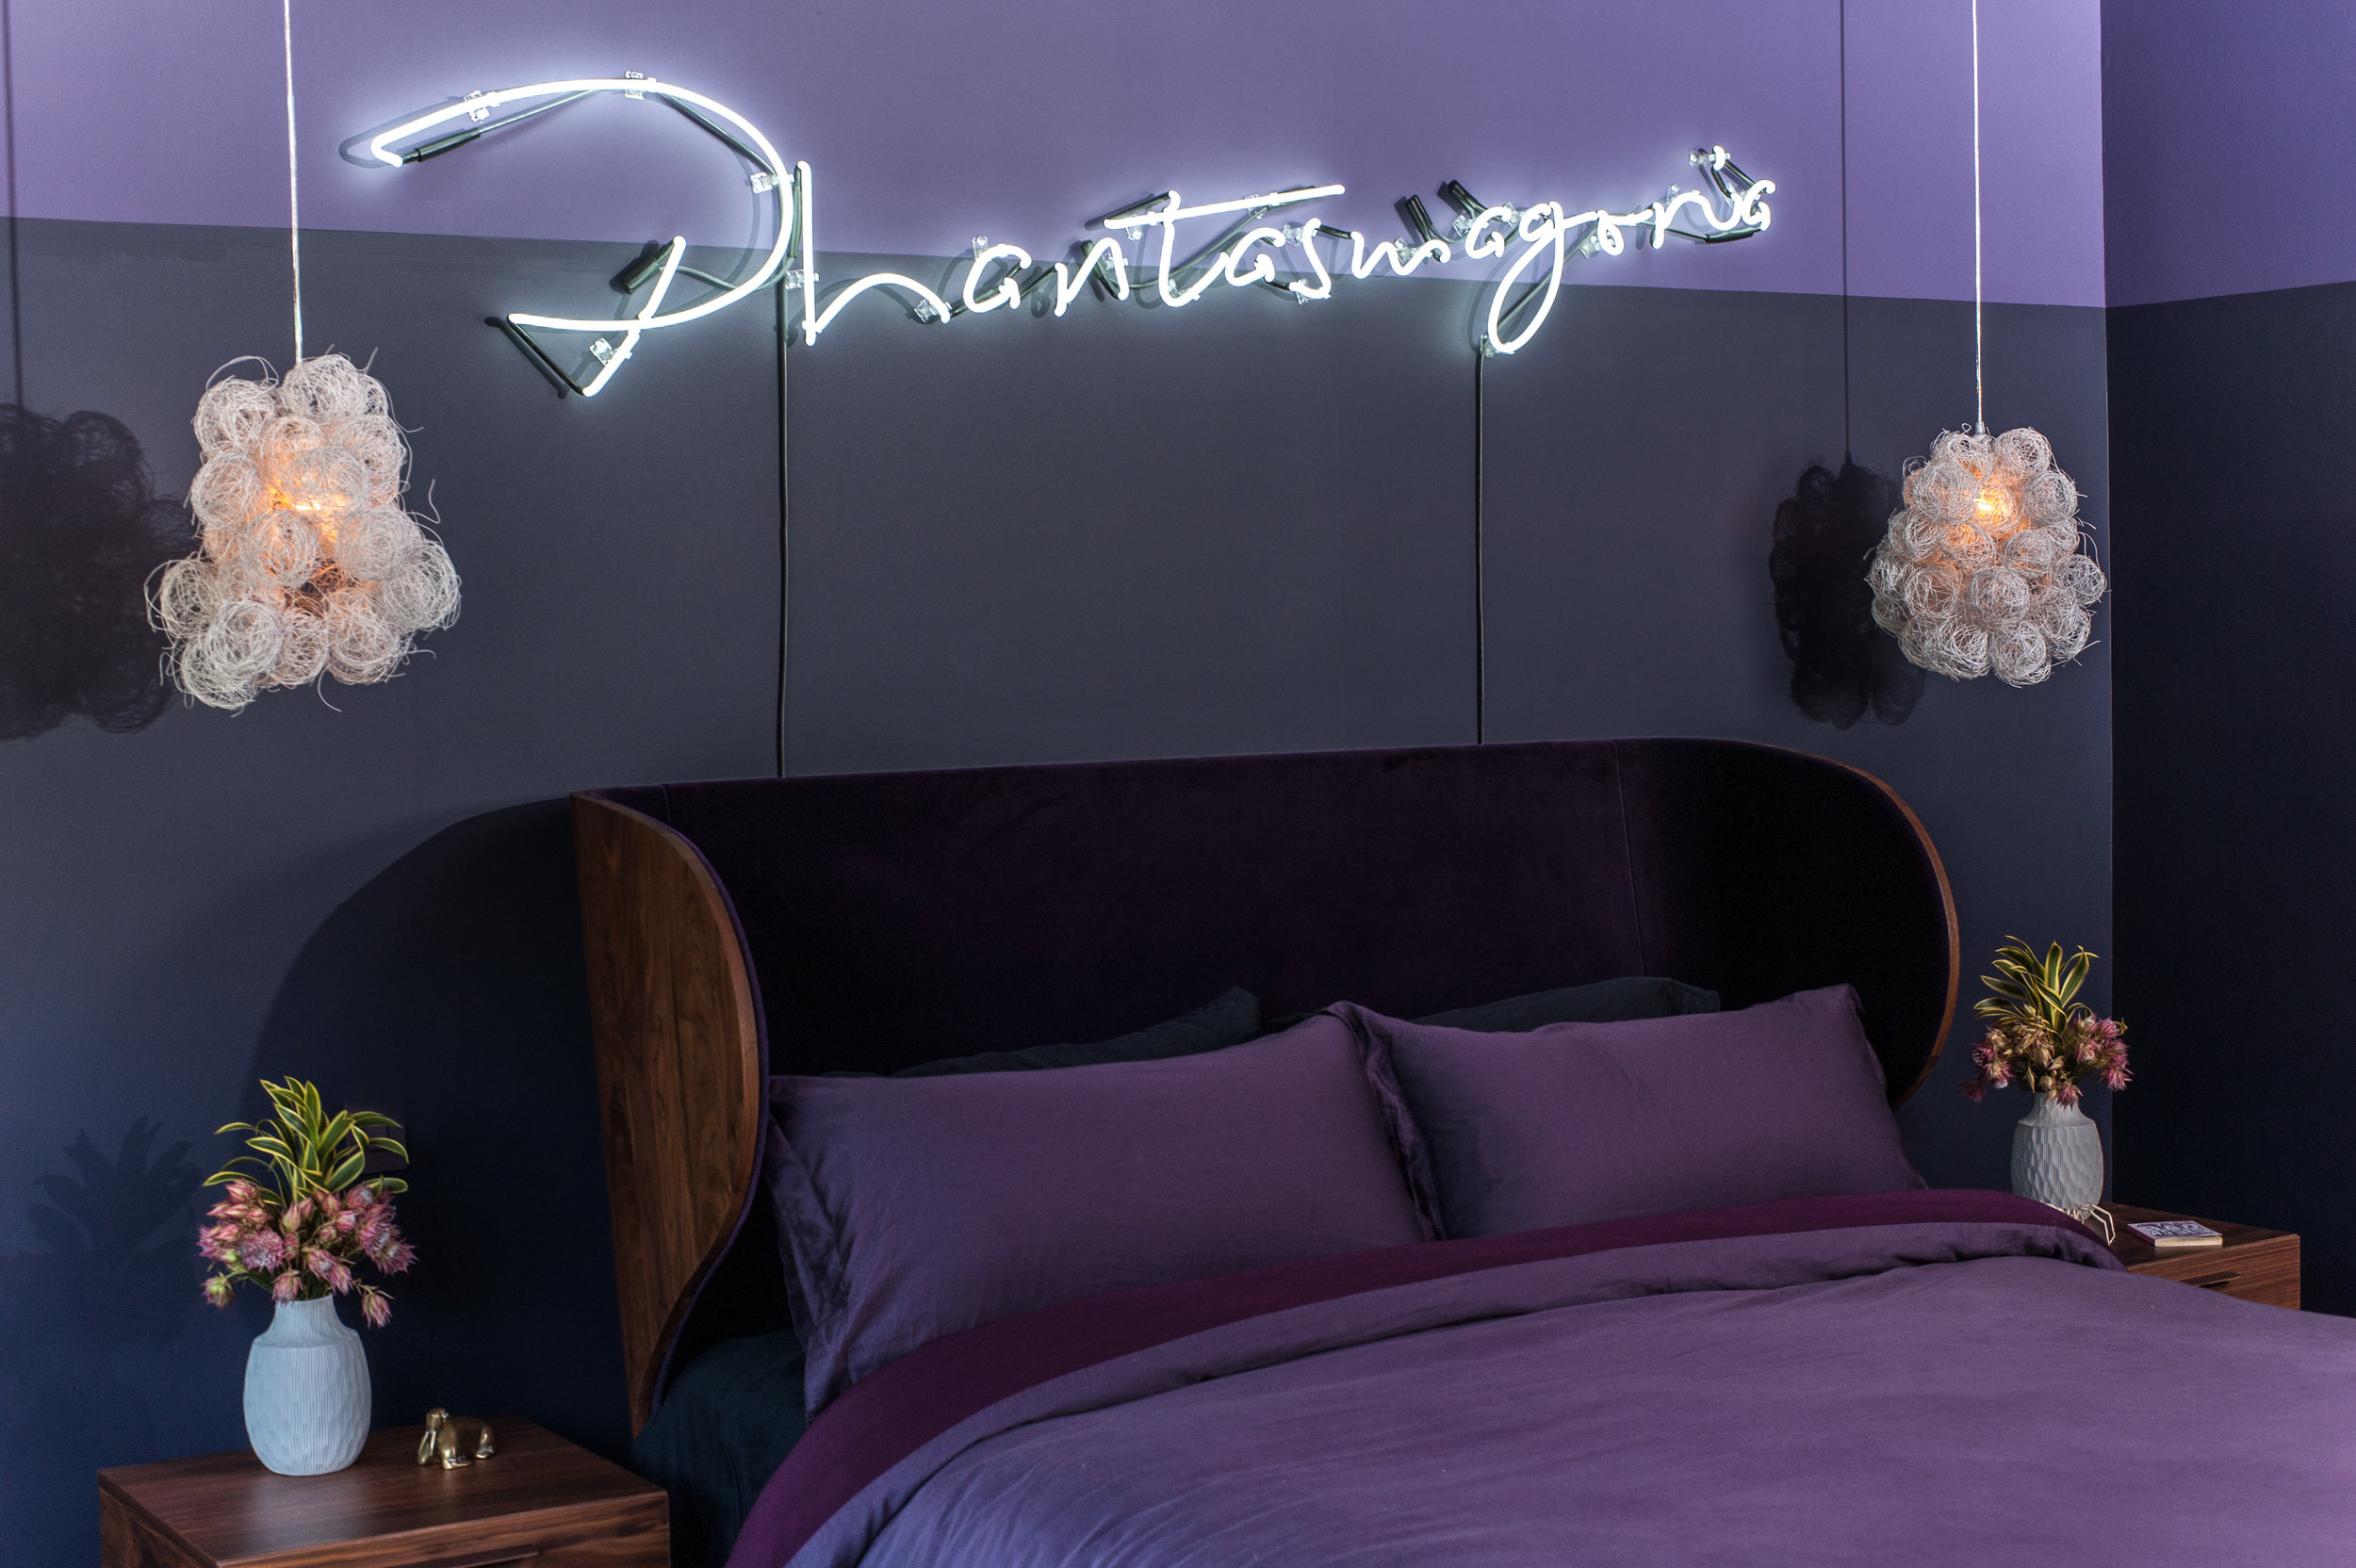 California king bed made from award-winning, American black walnut by Autoban, lined with purple velvet, blending natural textures with dark, feminine styling. Above it, a custom neon piece reading 'Phantasmagoria' adds an ethereal glow.